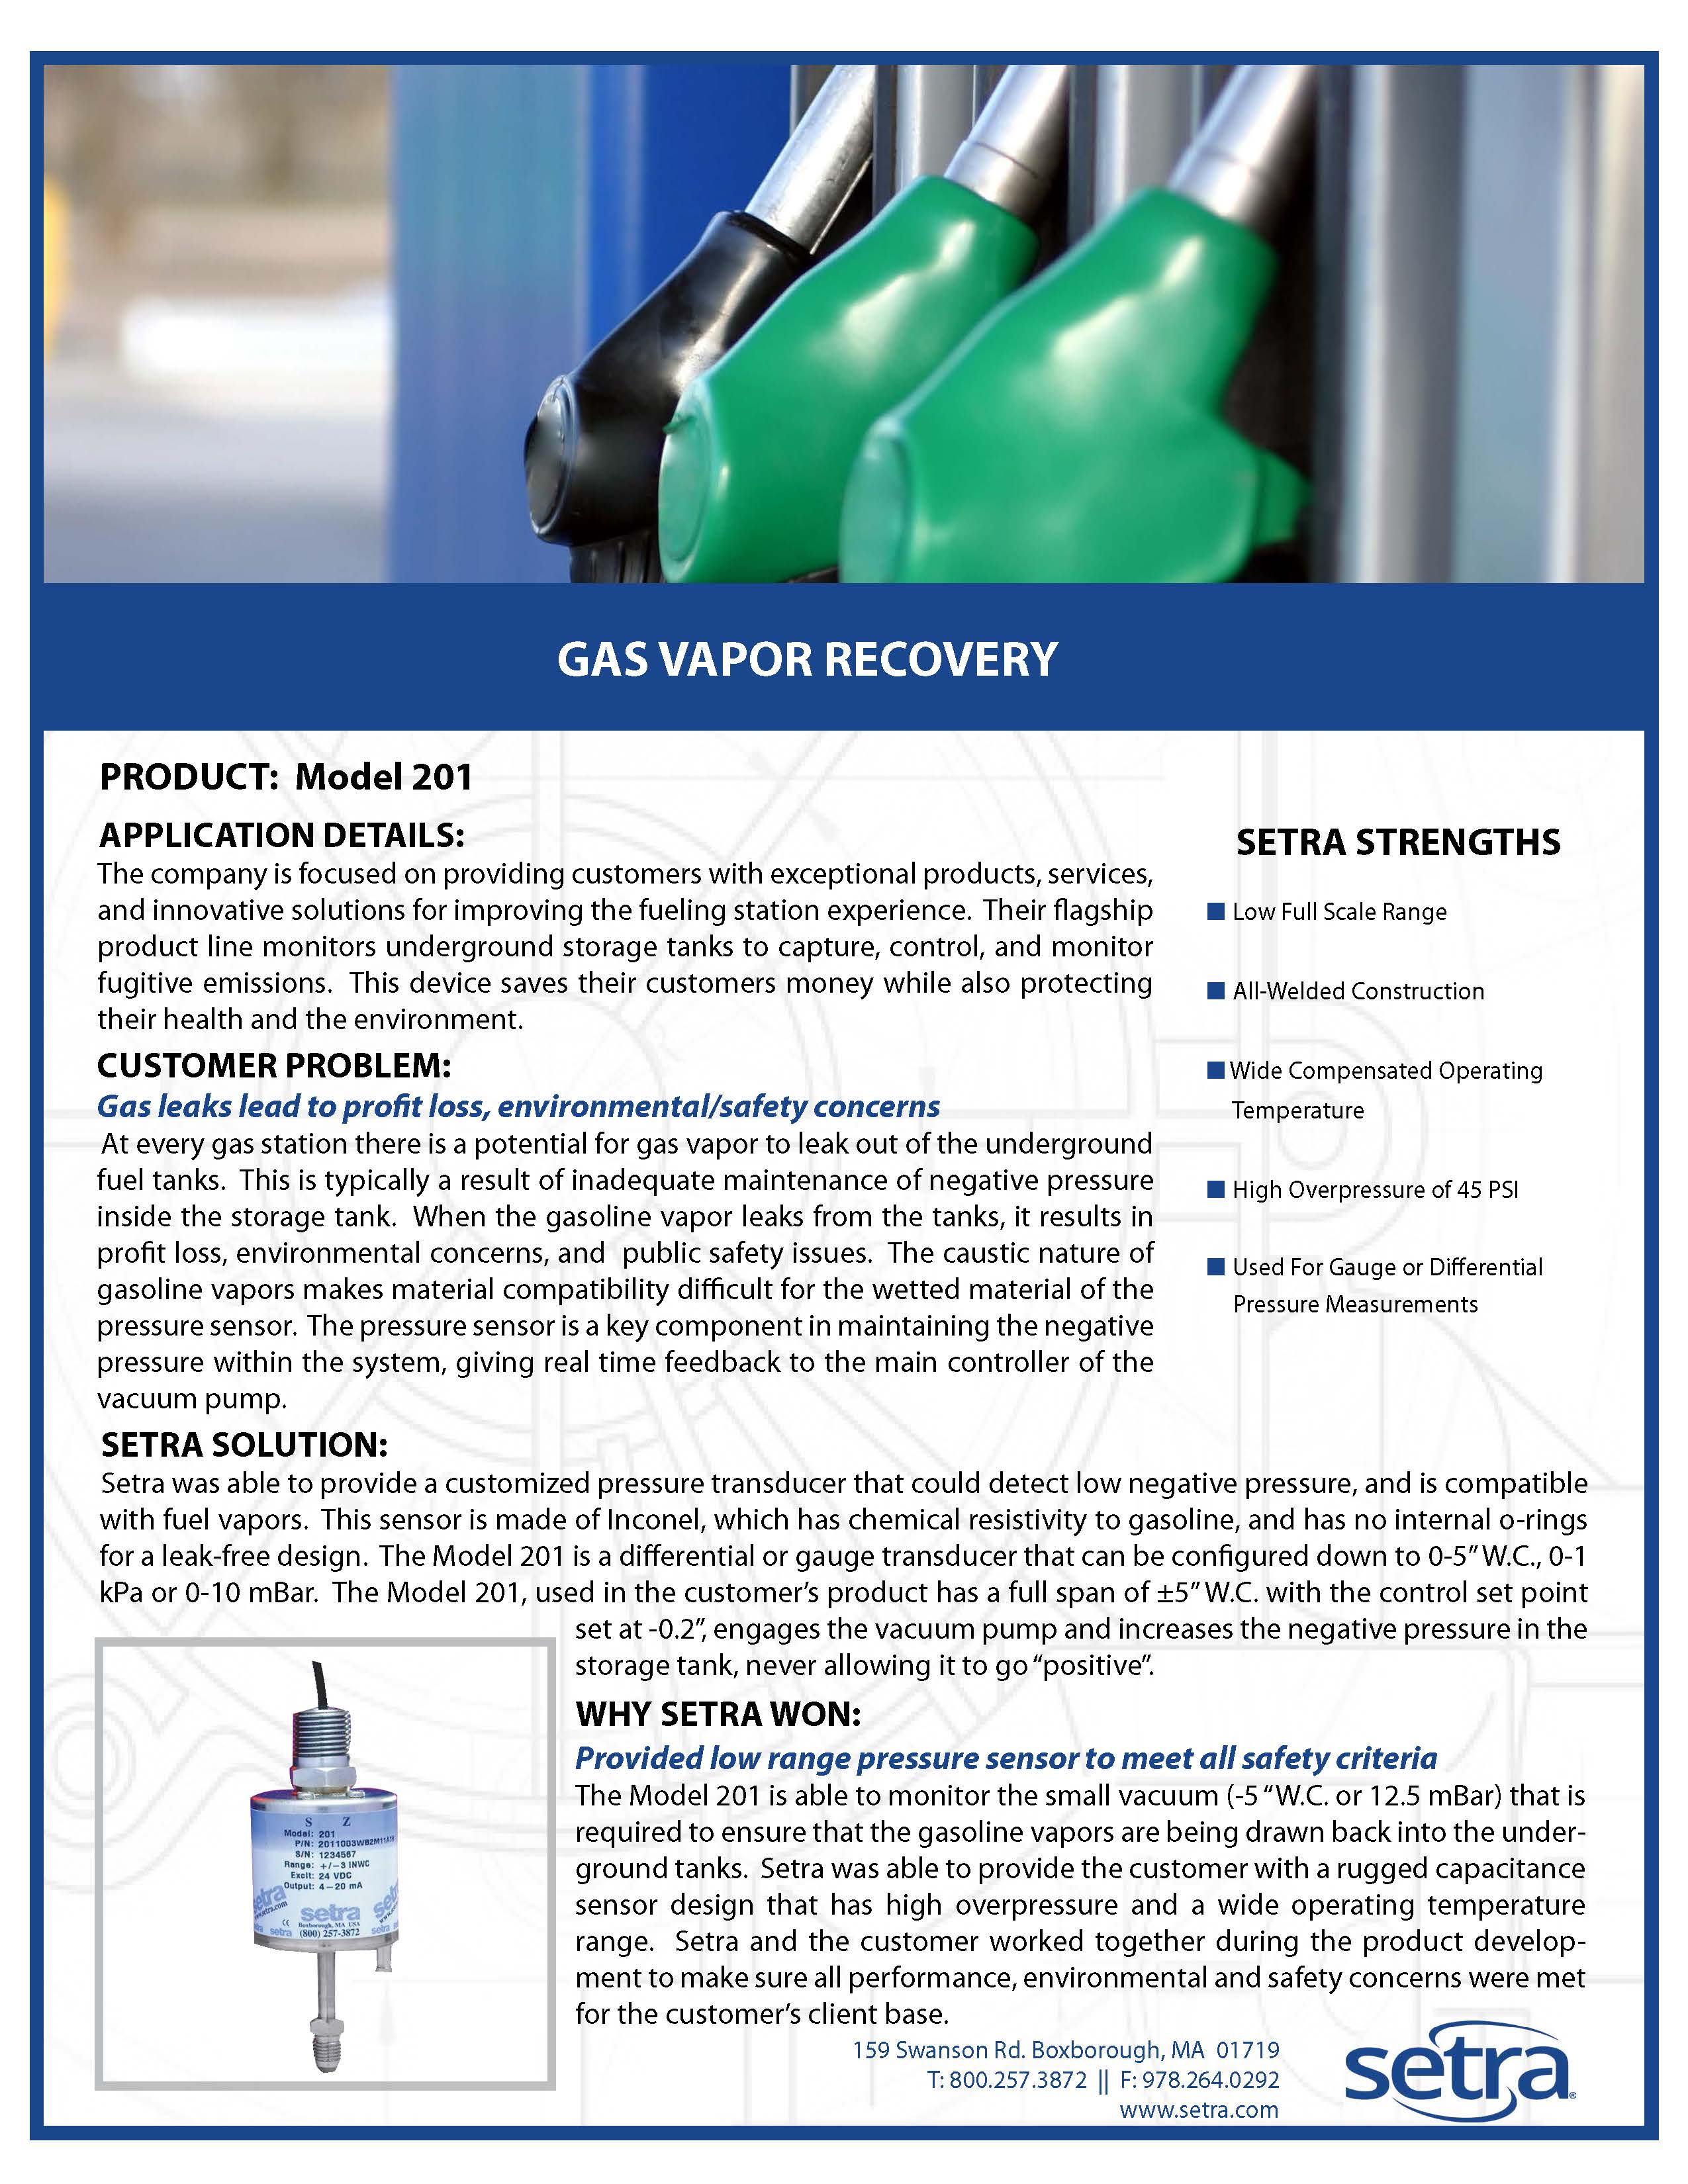 gas vapour recovery; oil and gas; test and measurement; setra 201; pressure transducers